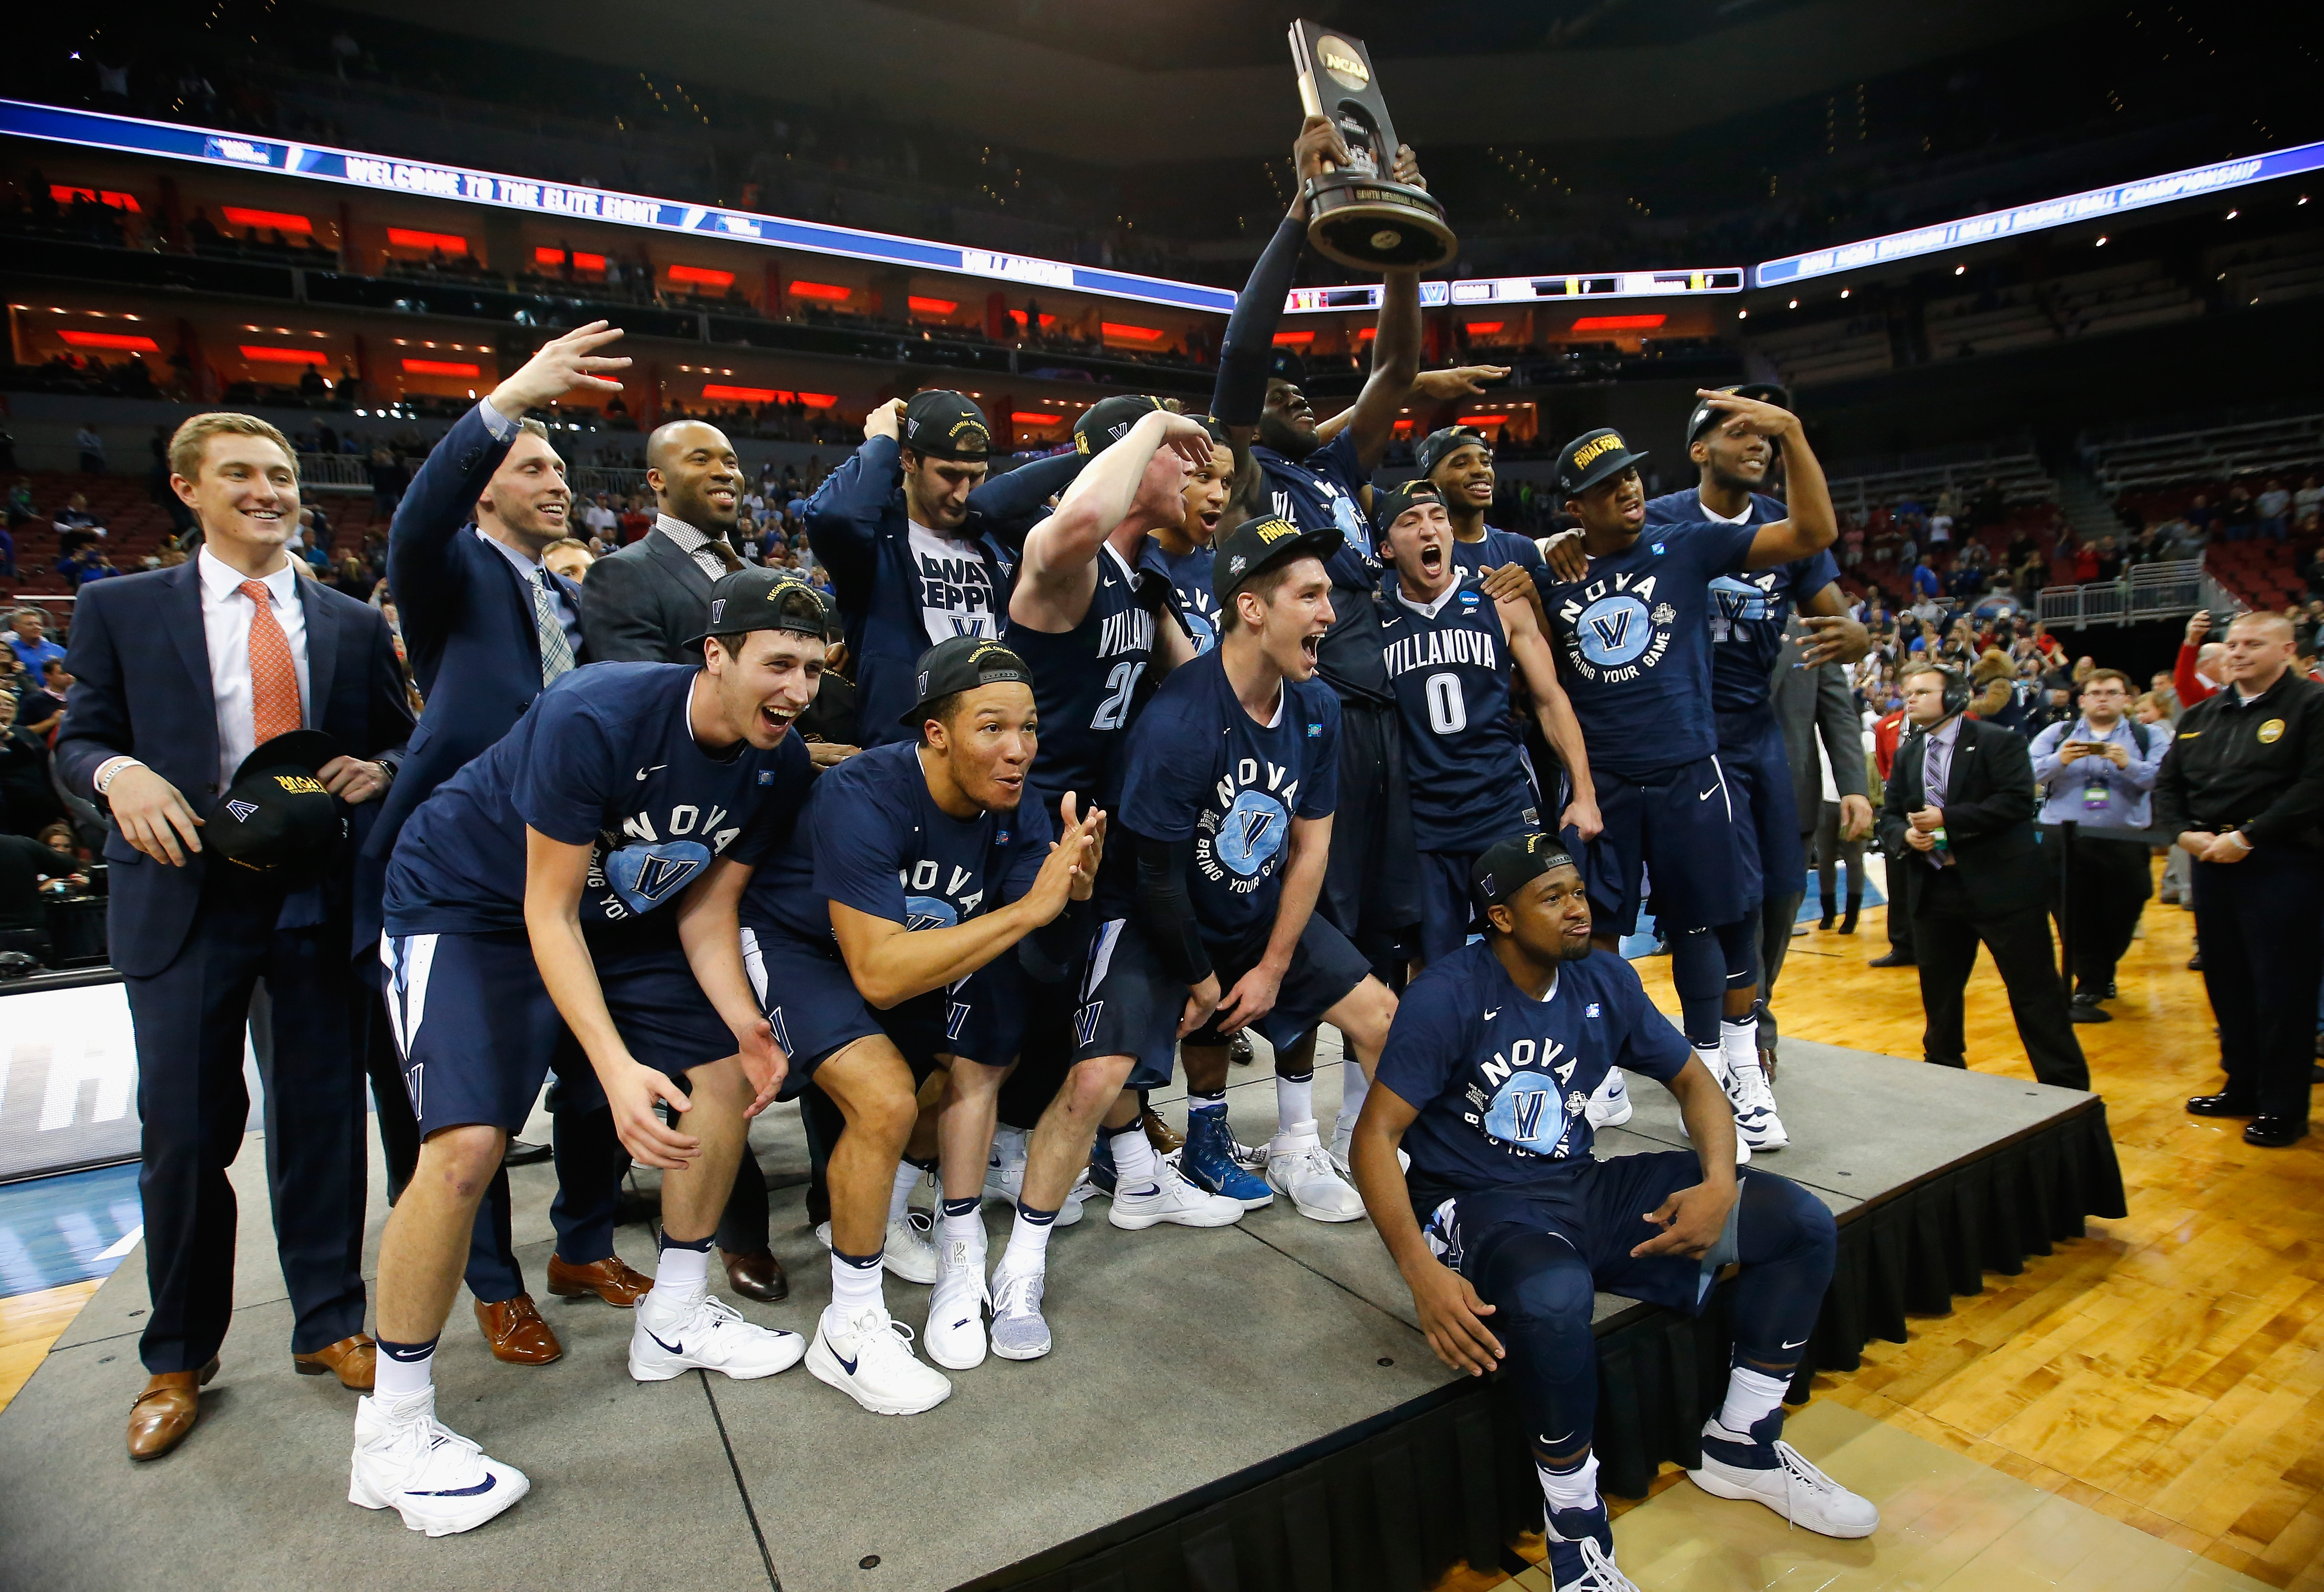 The Villanova Wildcats celebrate defeating the Kansas Jayhawks during the 2016 NCAA Men's Basketball Tournament South Regional on March 26, 2016 in Louisville, Ky.